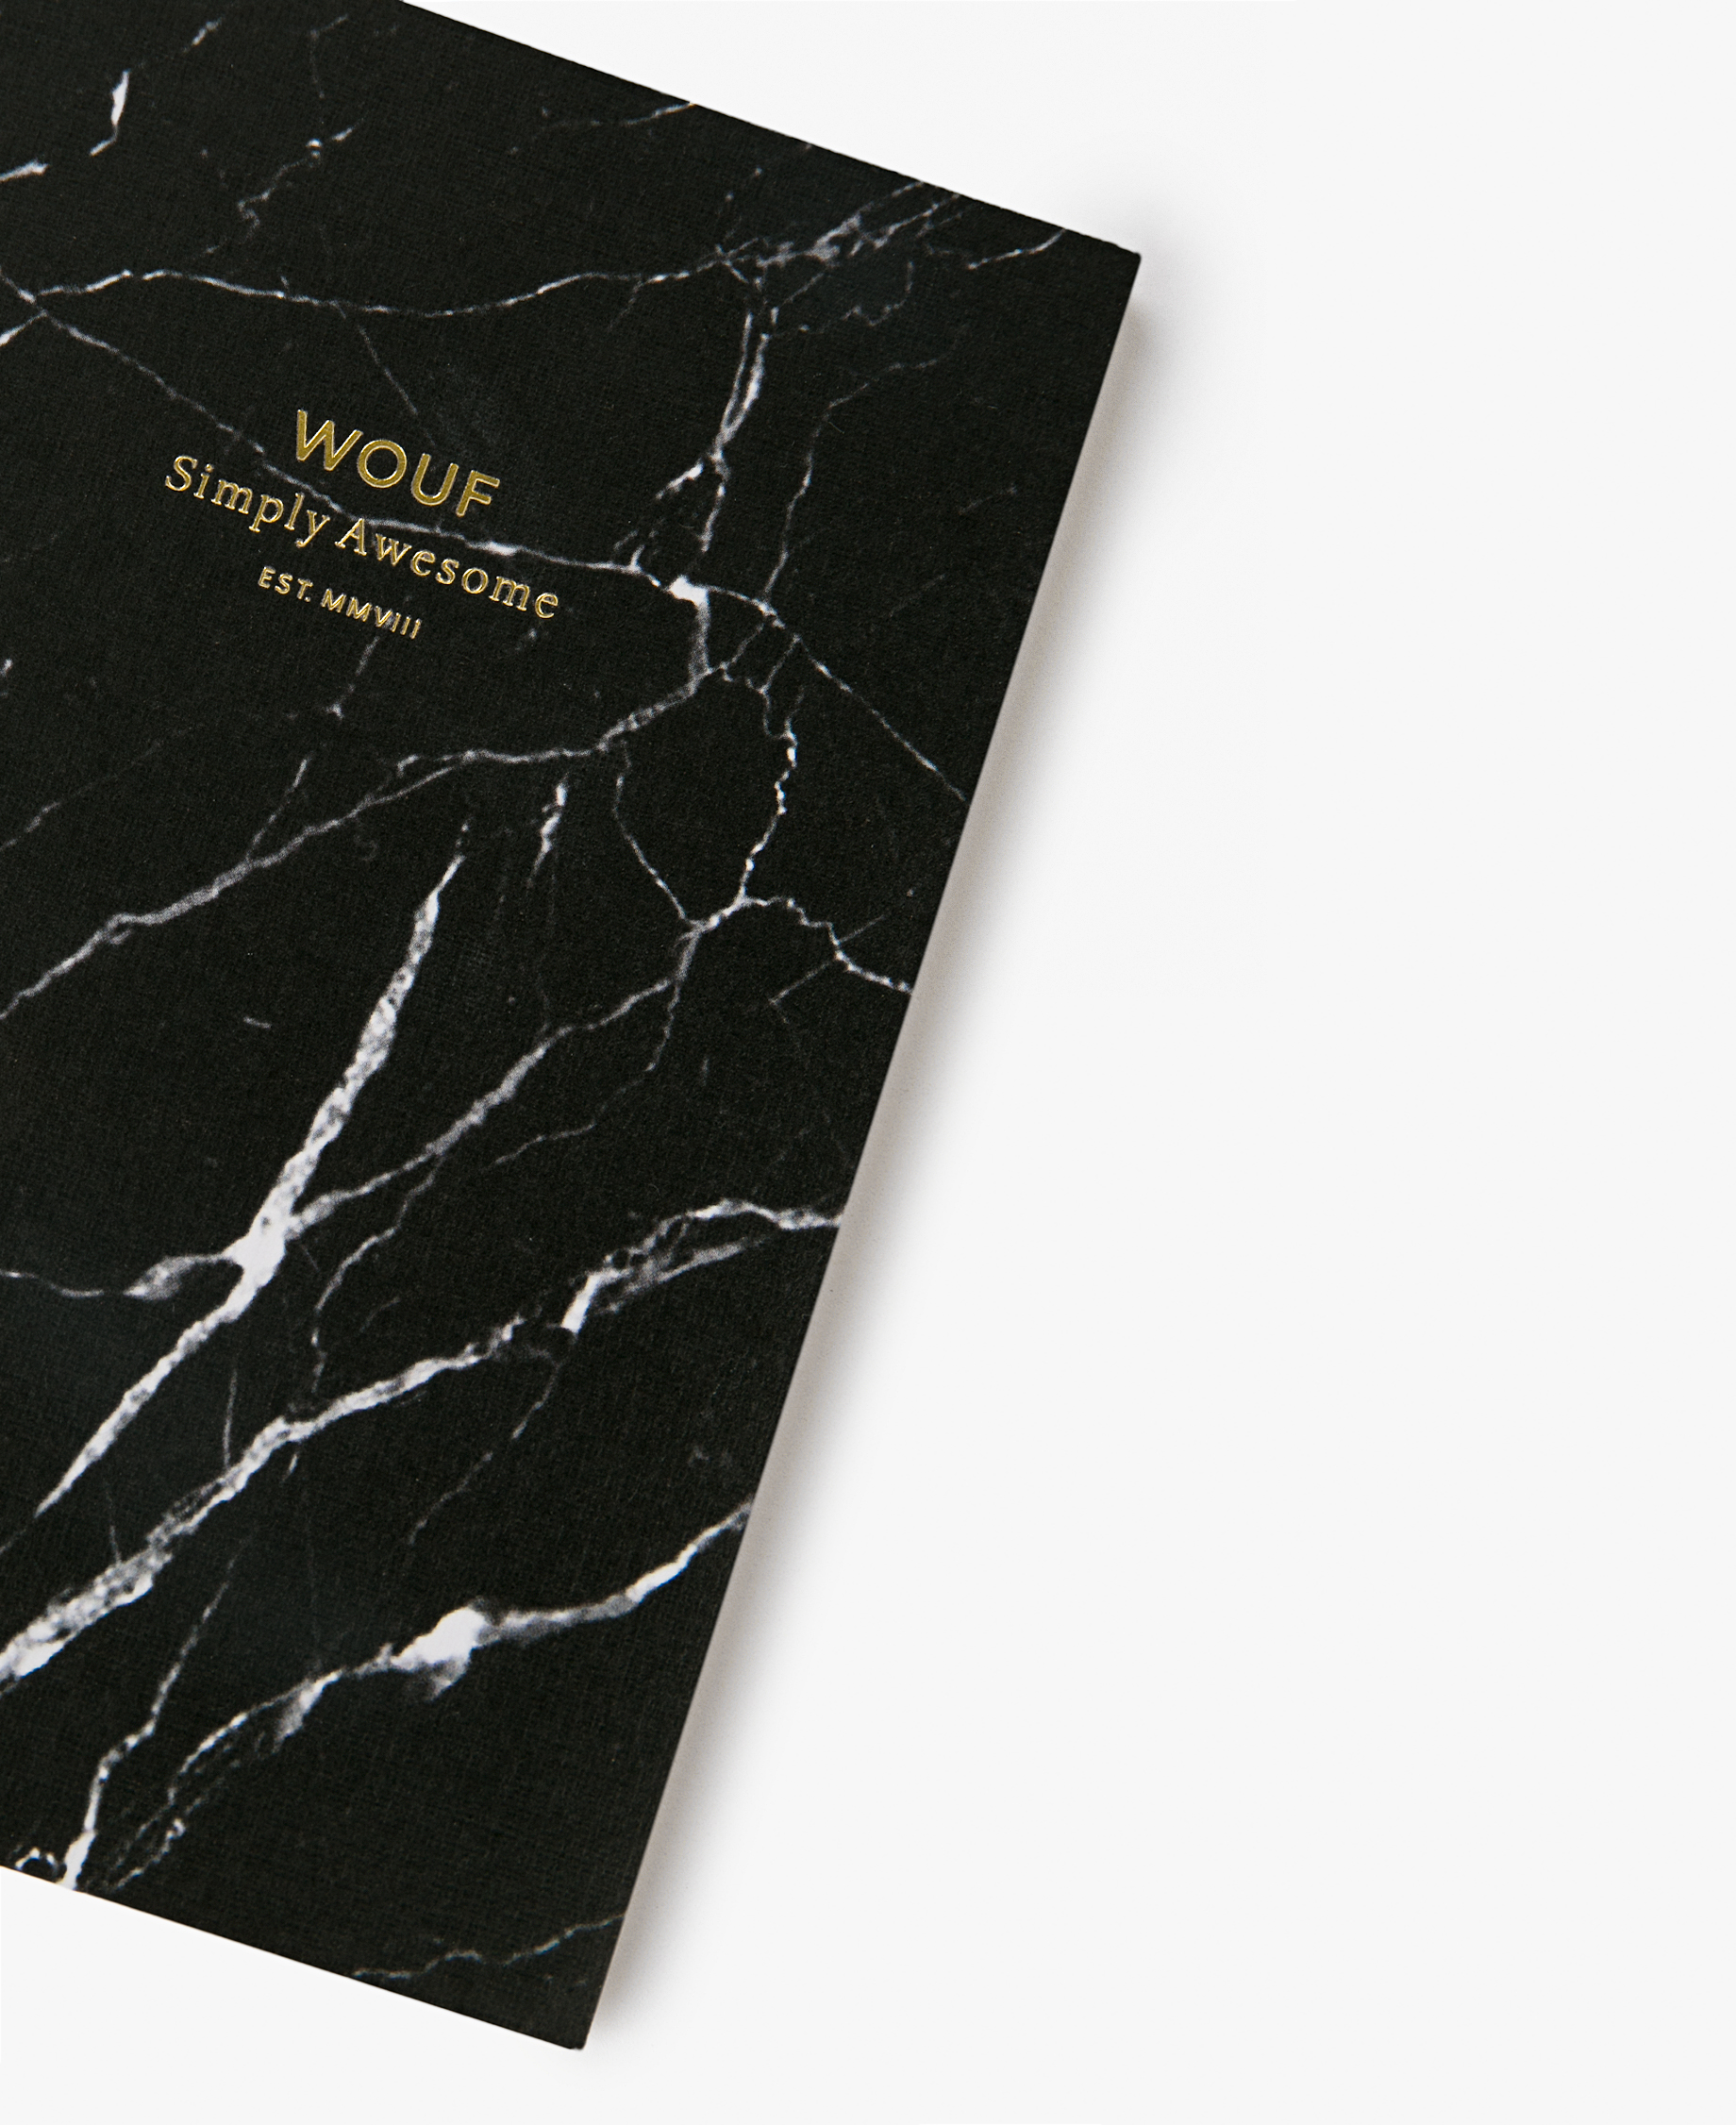 Black Marble A6 Notebook Wouf